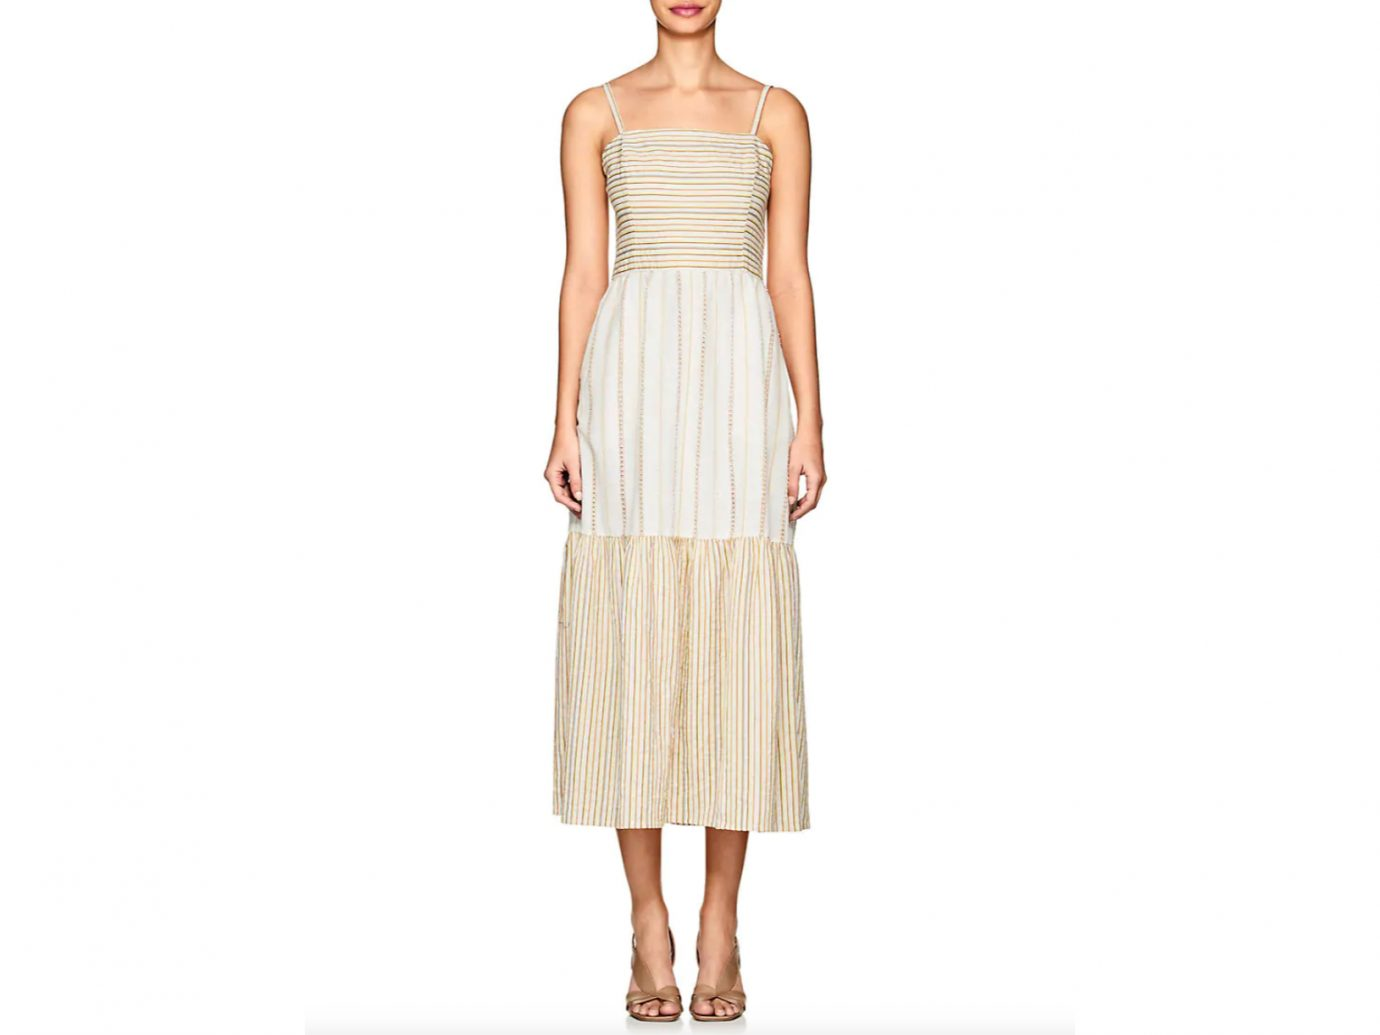 ACE & JIG Dusty Striped Cotton Maxi Dress